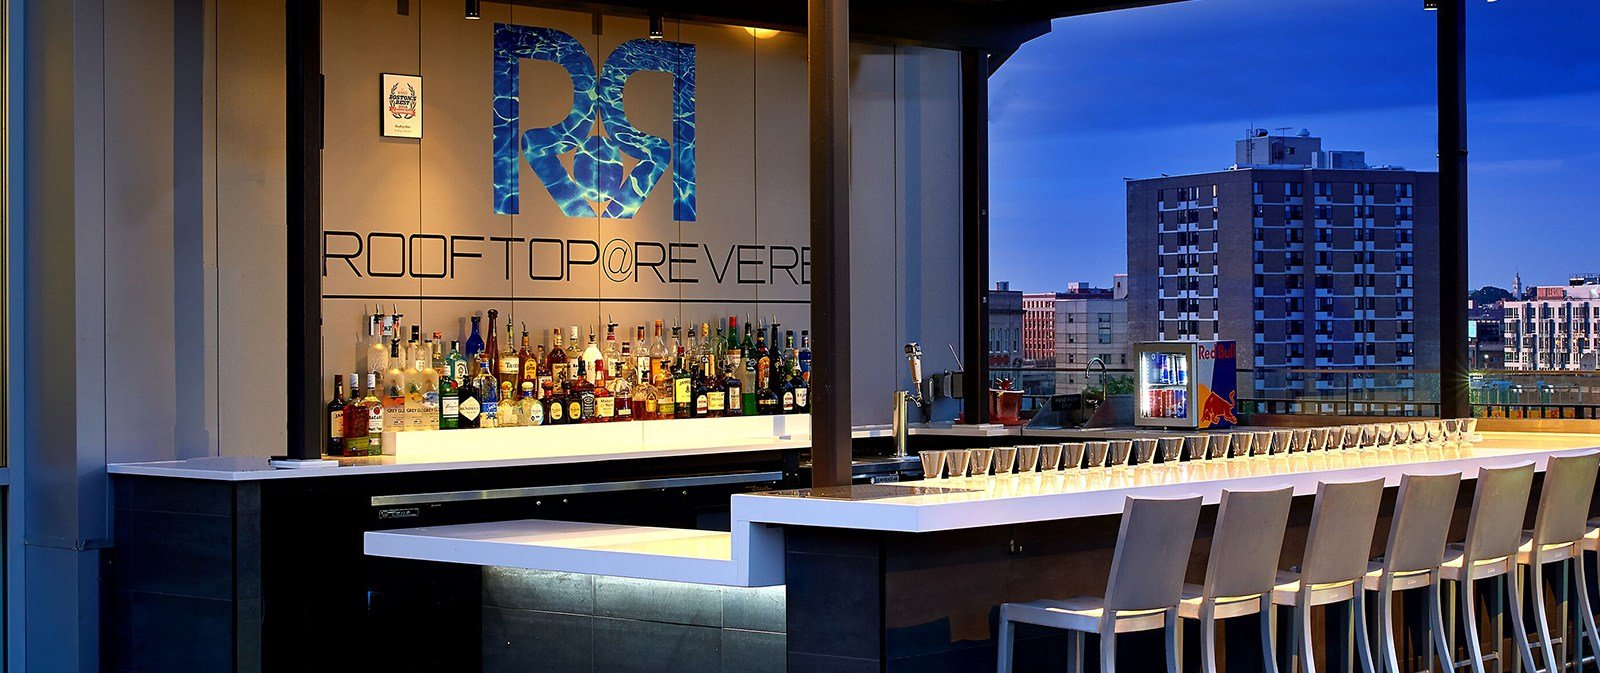 Best Rooftop Revere Menu Hours Revere Hotel Boston Common With Pictures